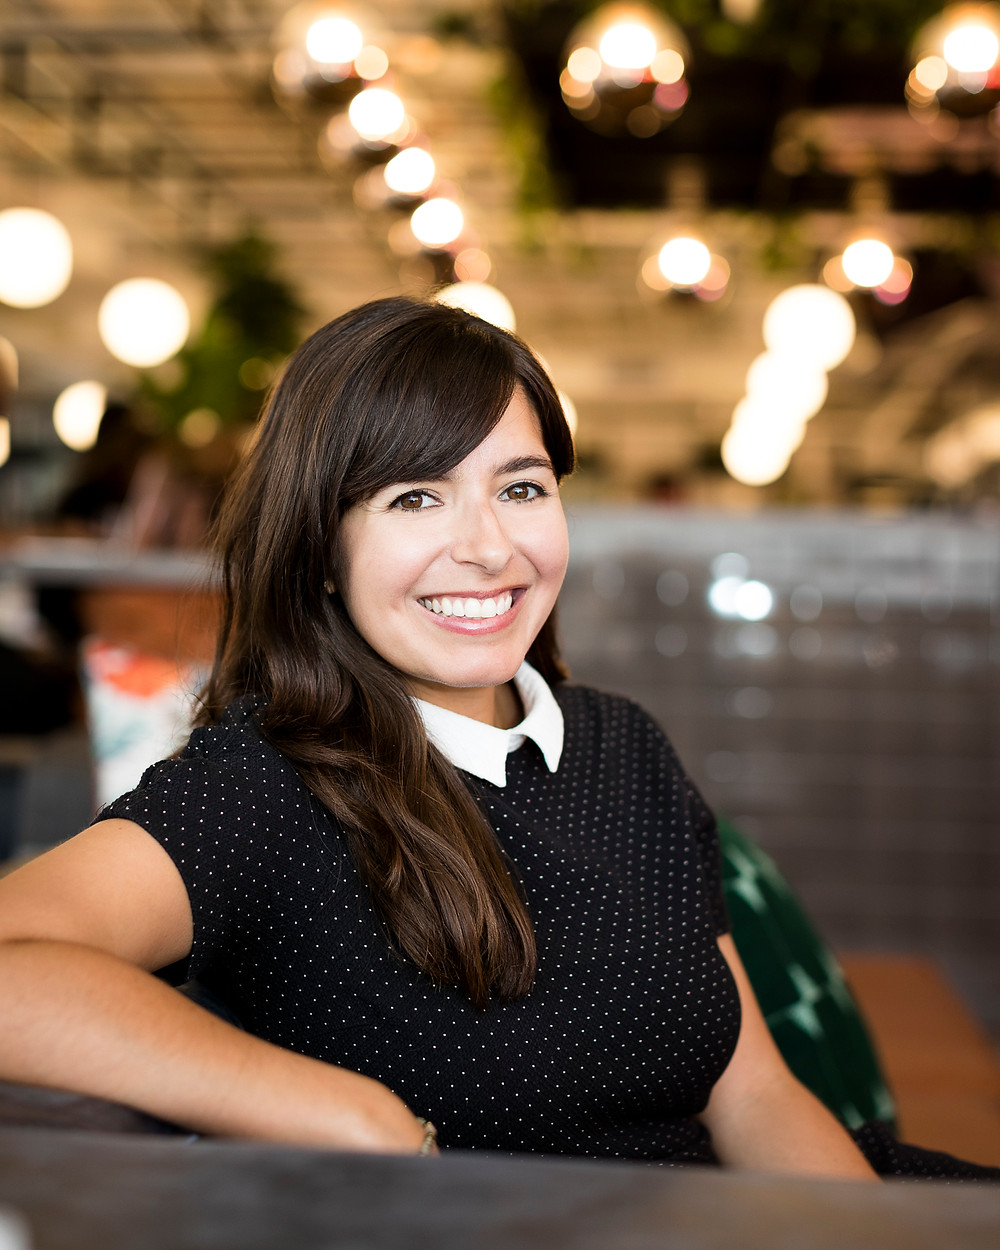 Cristina Crespo, Design Director of WeWork LatAm